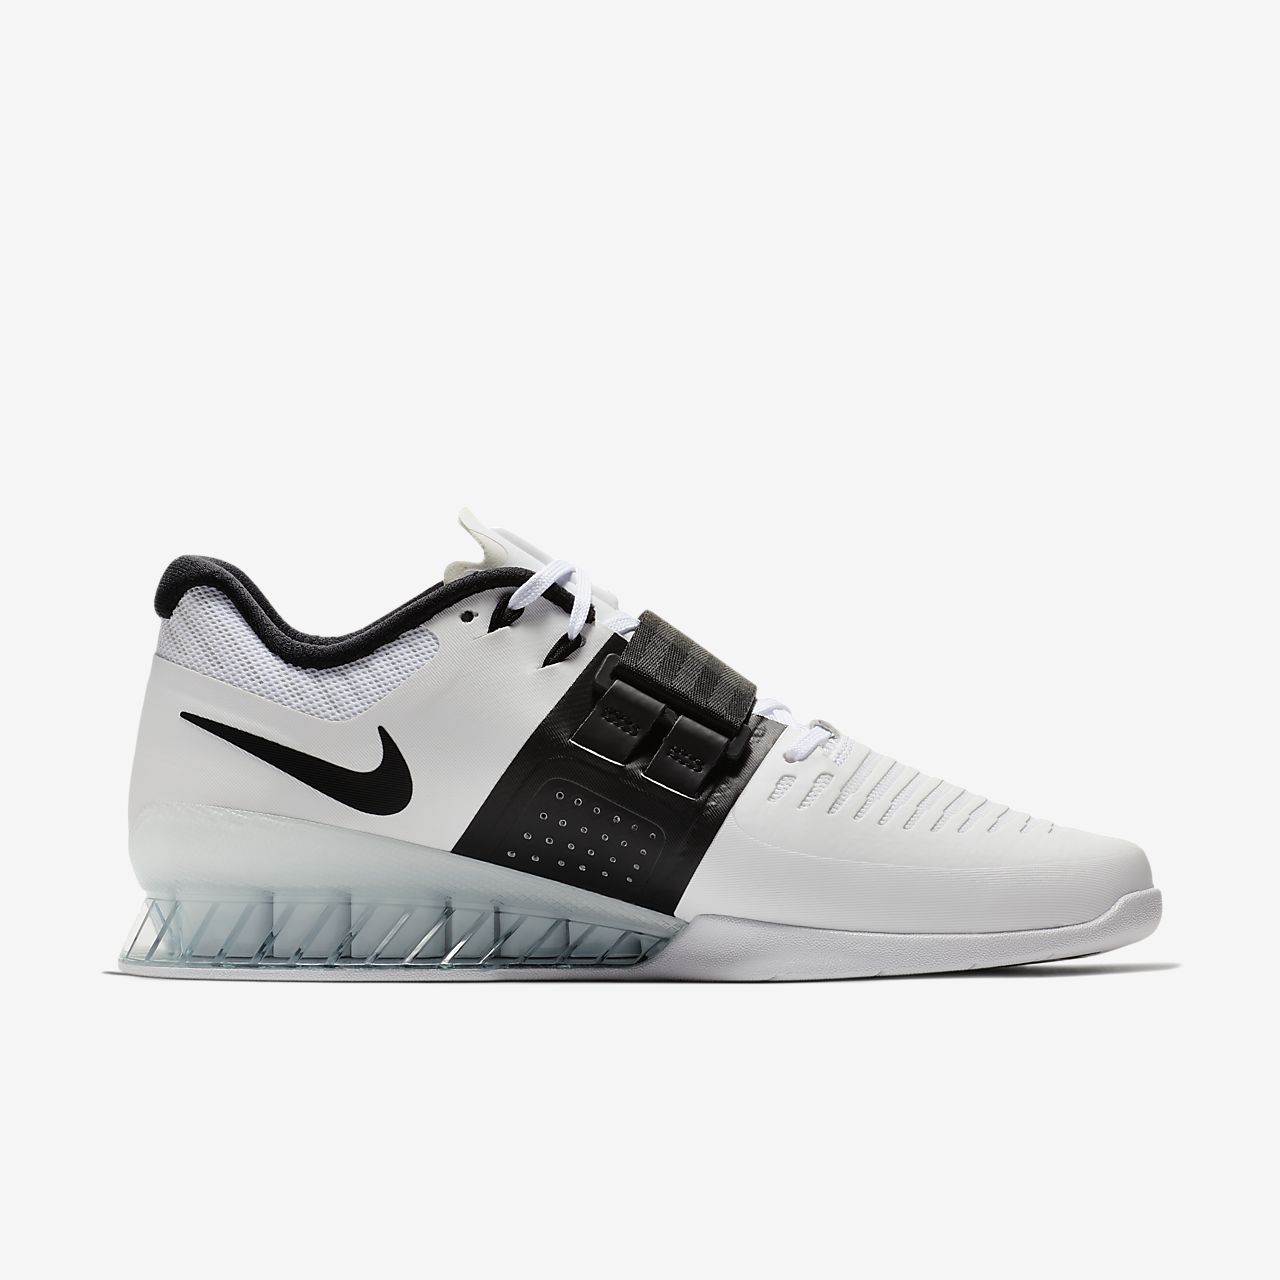 new concept 213dd 0de77 ... Nike Romaleos 3 Weightlifting Powerlifting Shoe